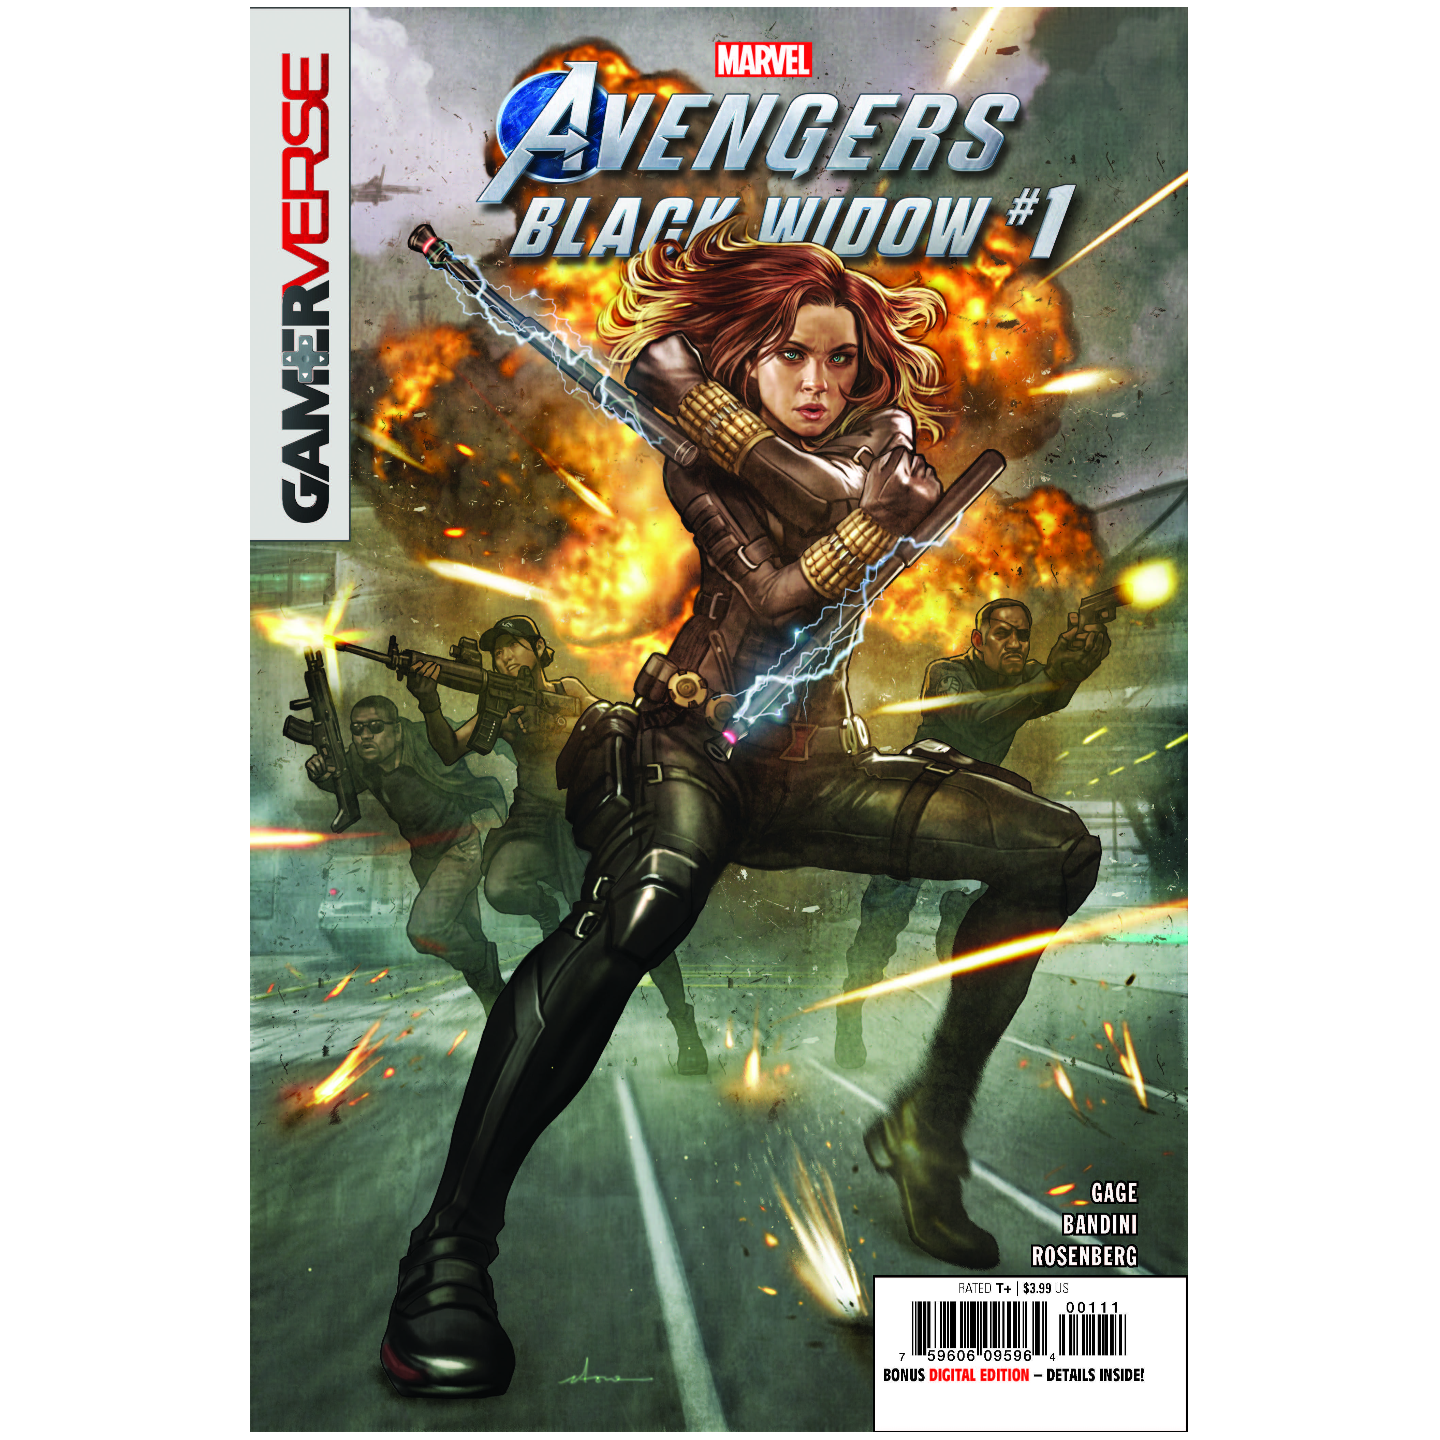 MARVELS AVENGERS BLACK WIDOW #1